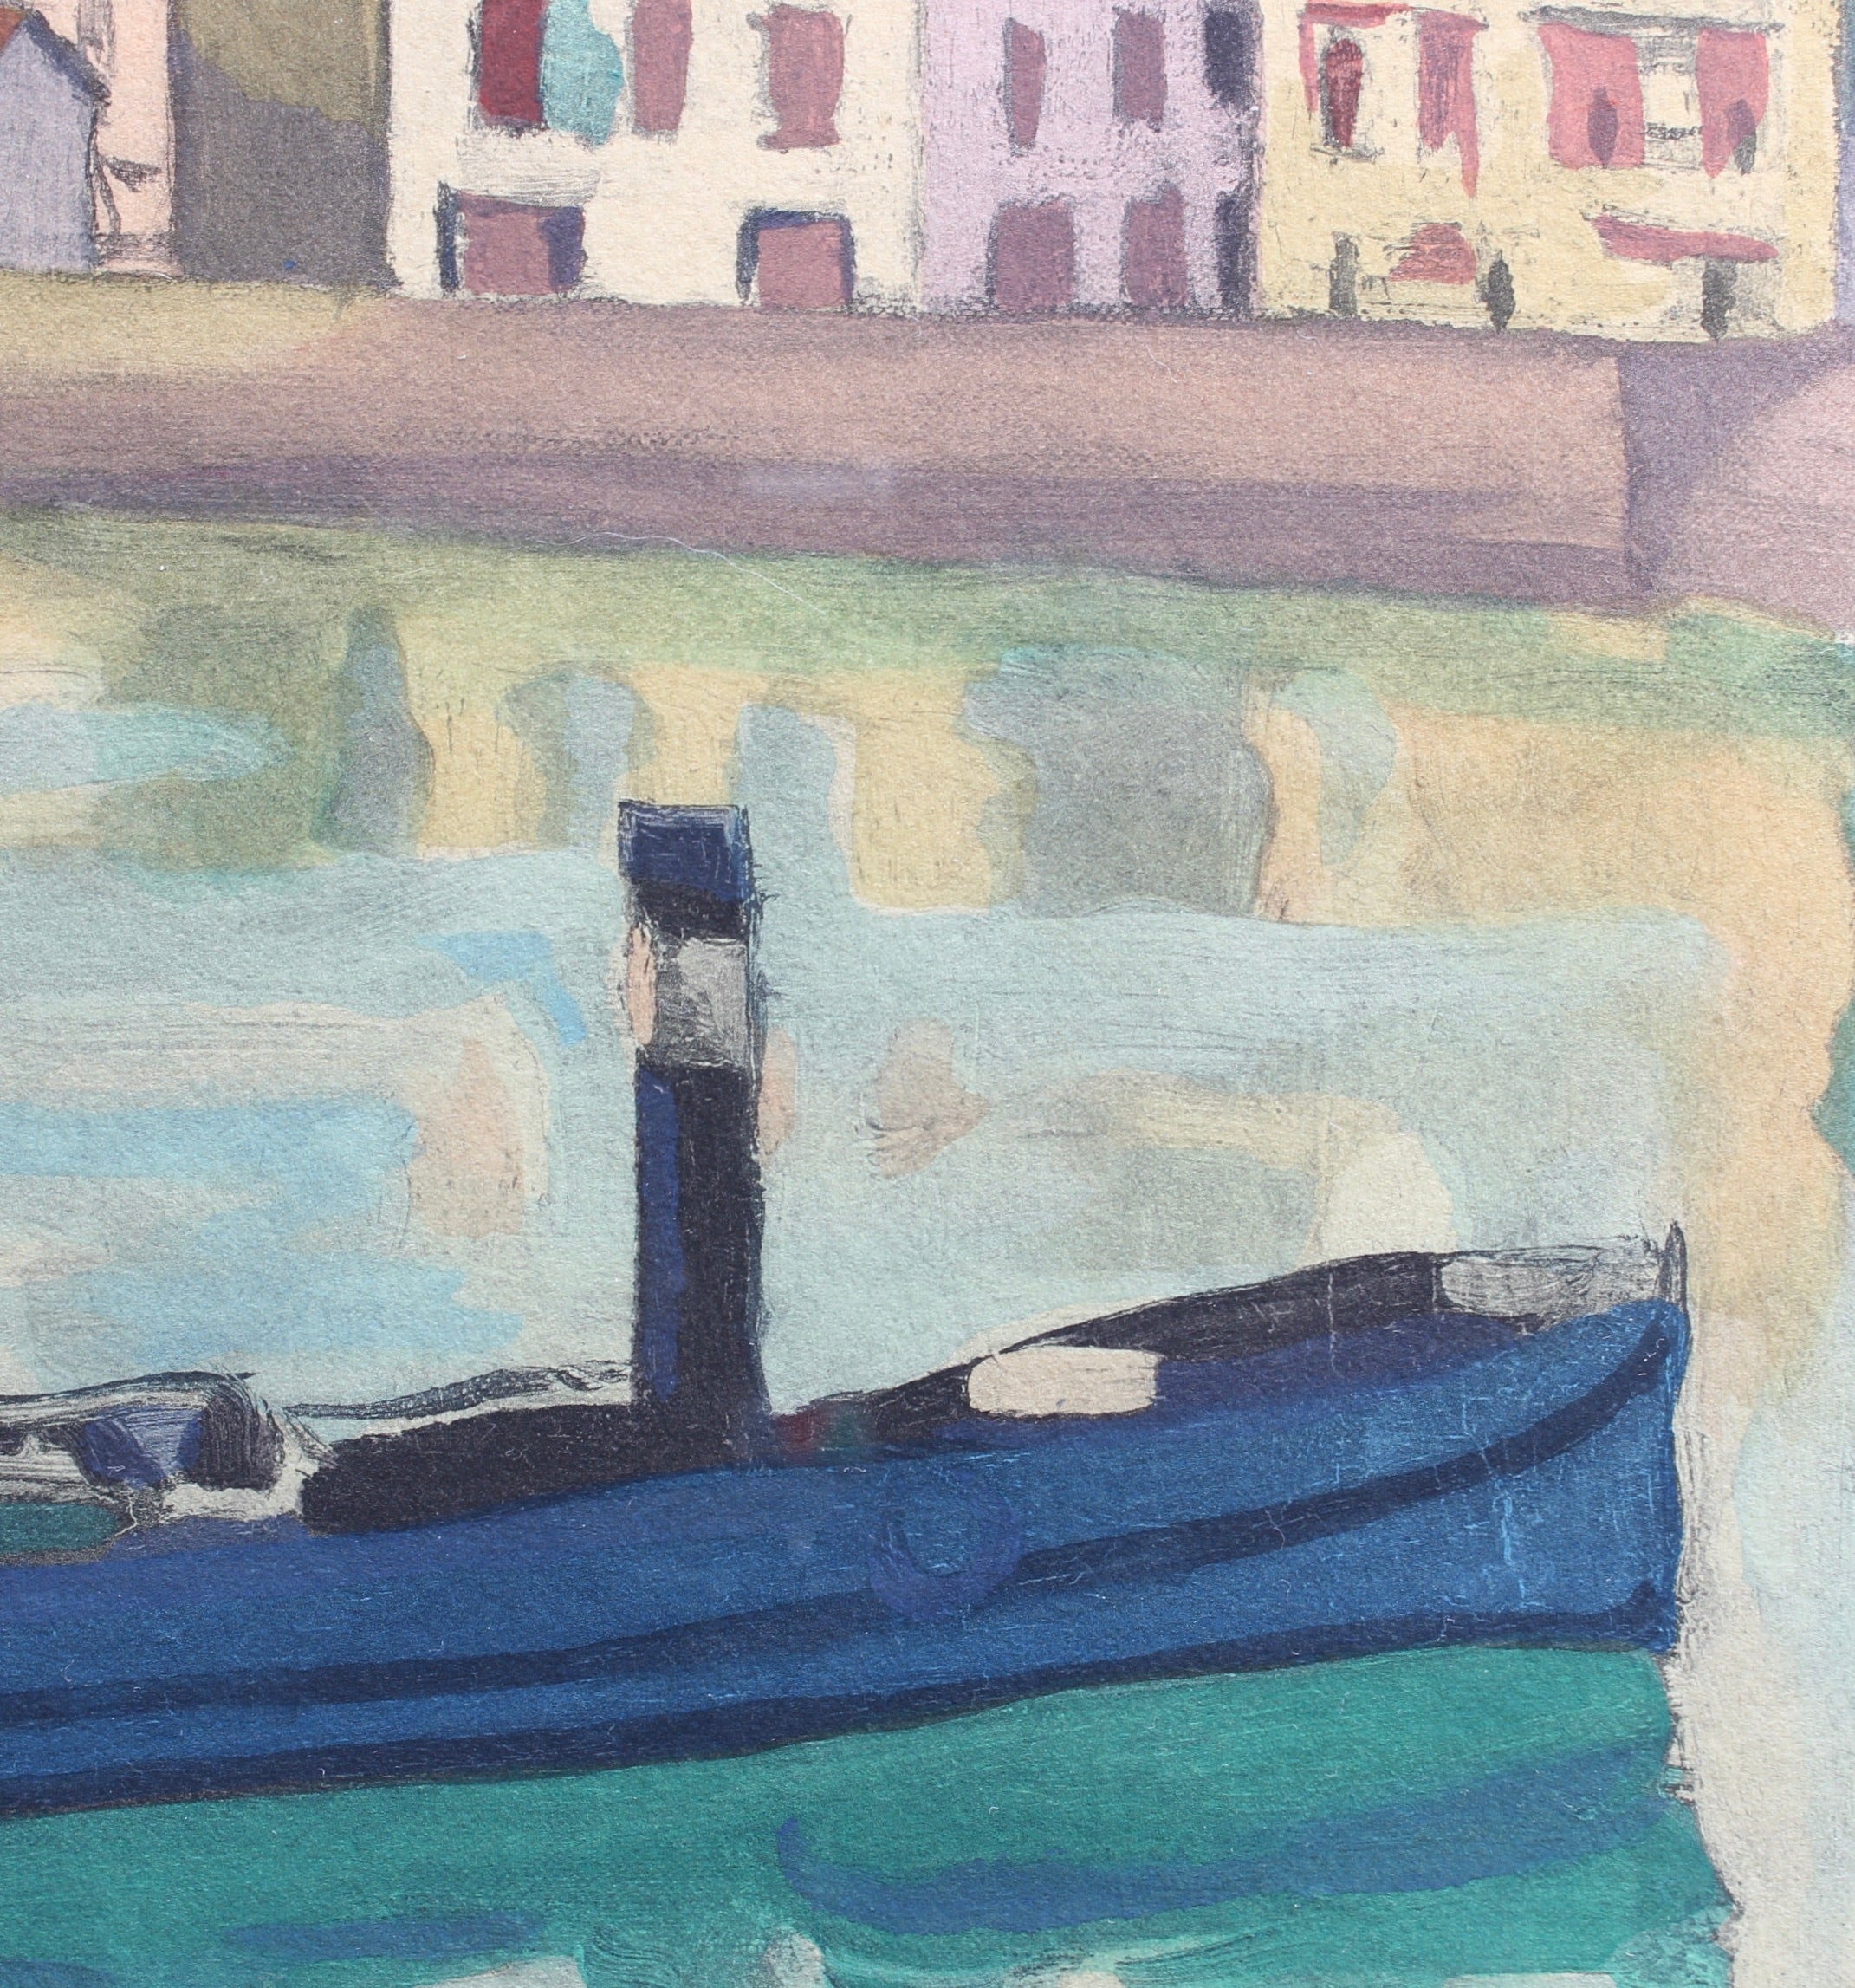 'The Port of Saint-Jean-de-Luz' Original Lithograph by Albert Marquet (circa 1930s)